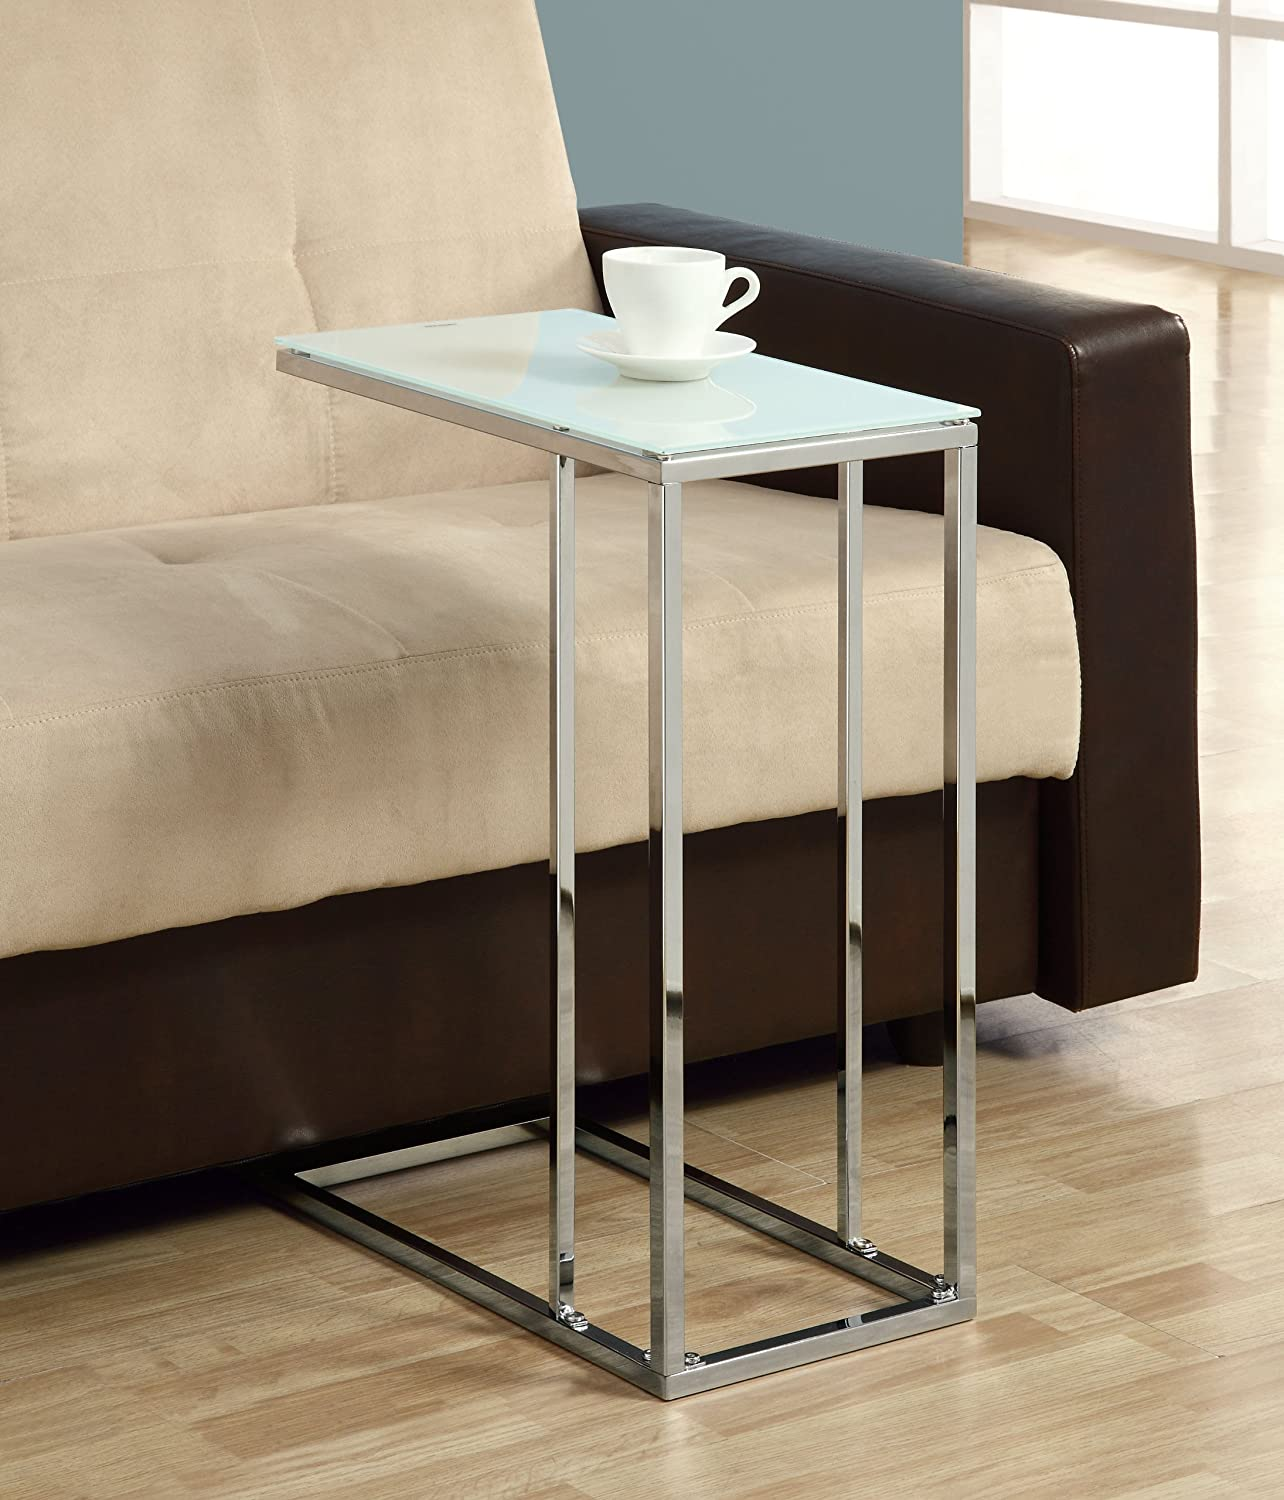 New Living Room Coffee End Table Slide Under Couch Side Metal Glass Top Chrome Ebay